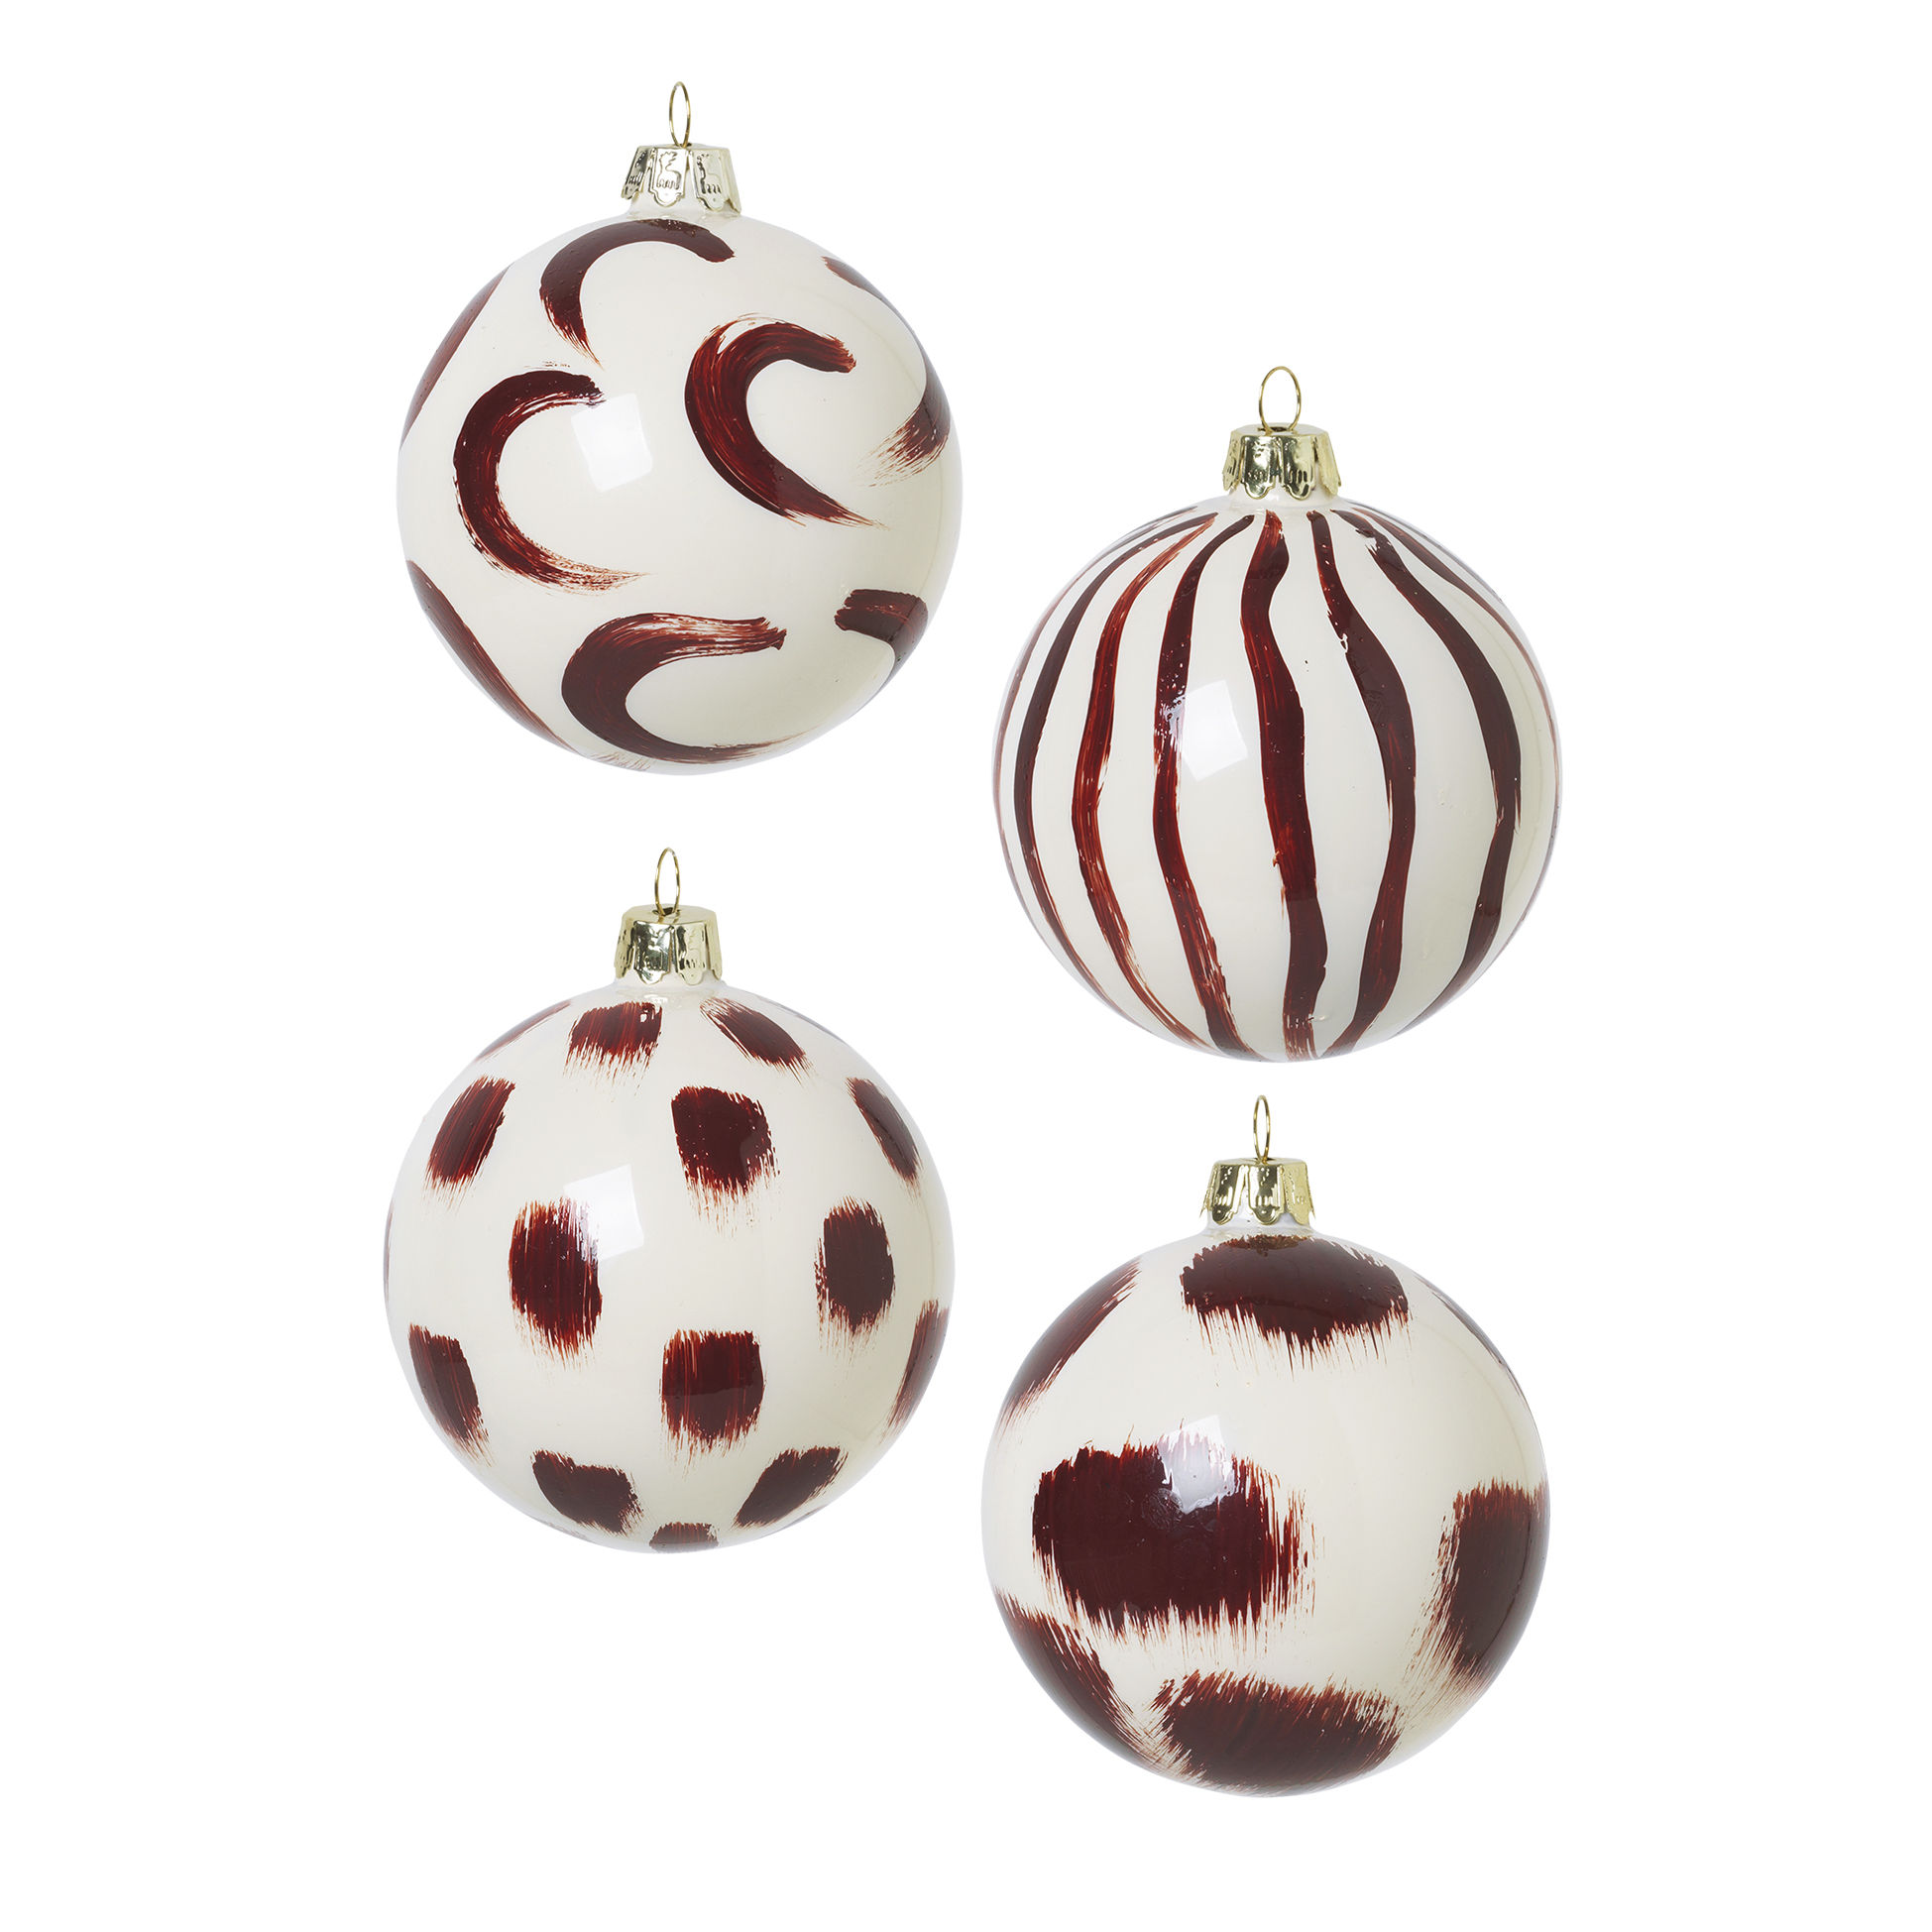 Decoration - Home Accessories - Bauble - / Set of 4 - Hand-painted glass by Ferm Living - Dark red - Glass